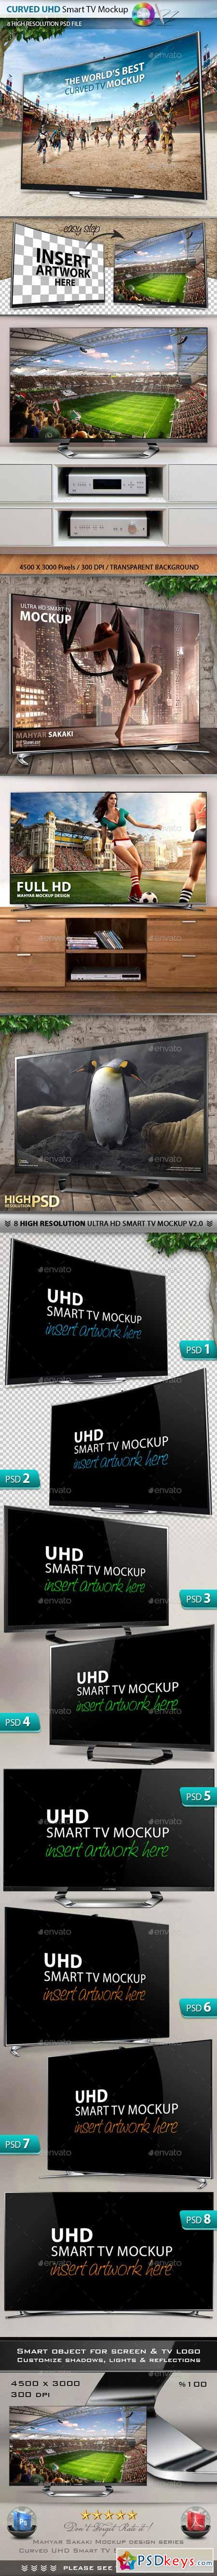 8 UHD Smart Screen Mockup V2.0  10147978